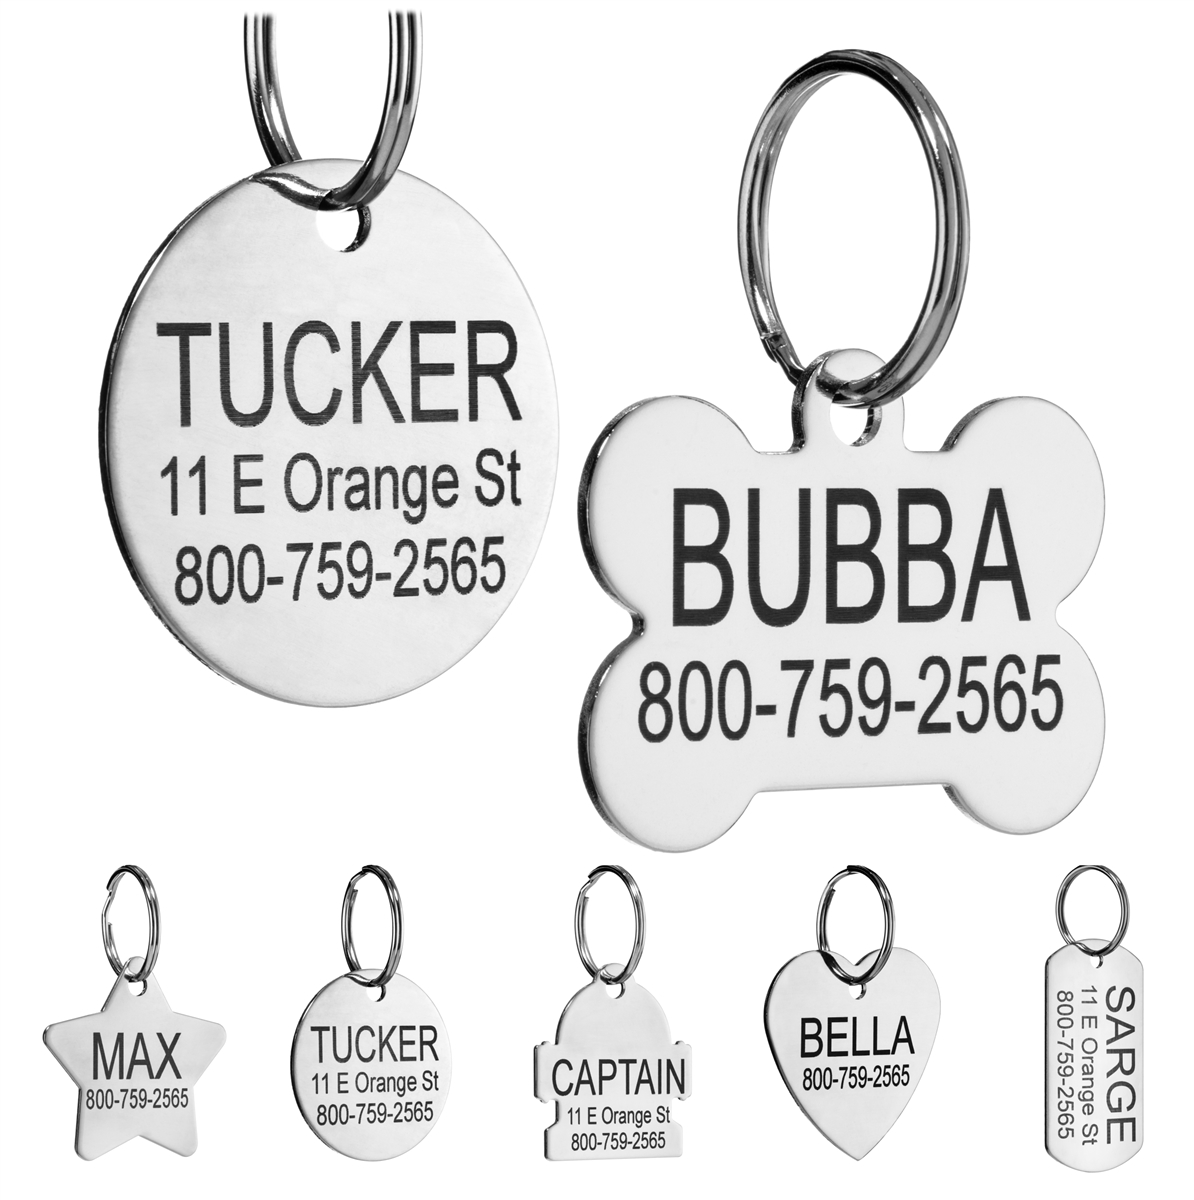 91e100f62ed3 Stainless Steel Pet ID Tags Personalized for Dogs and Cats